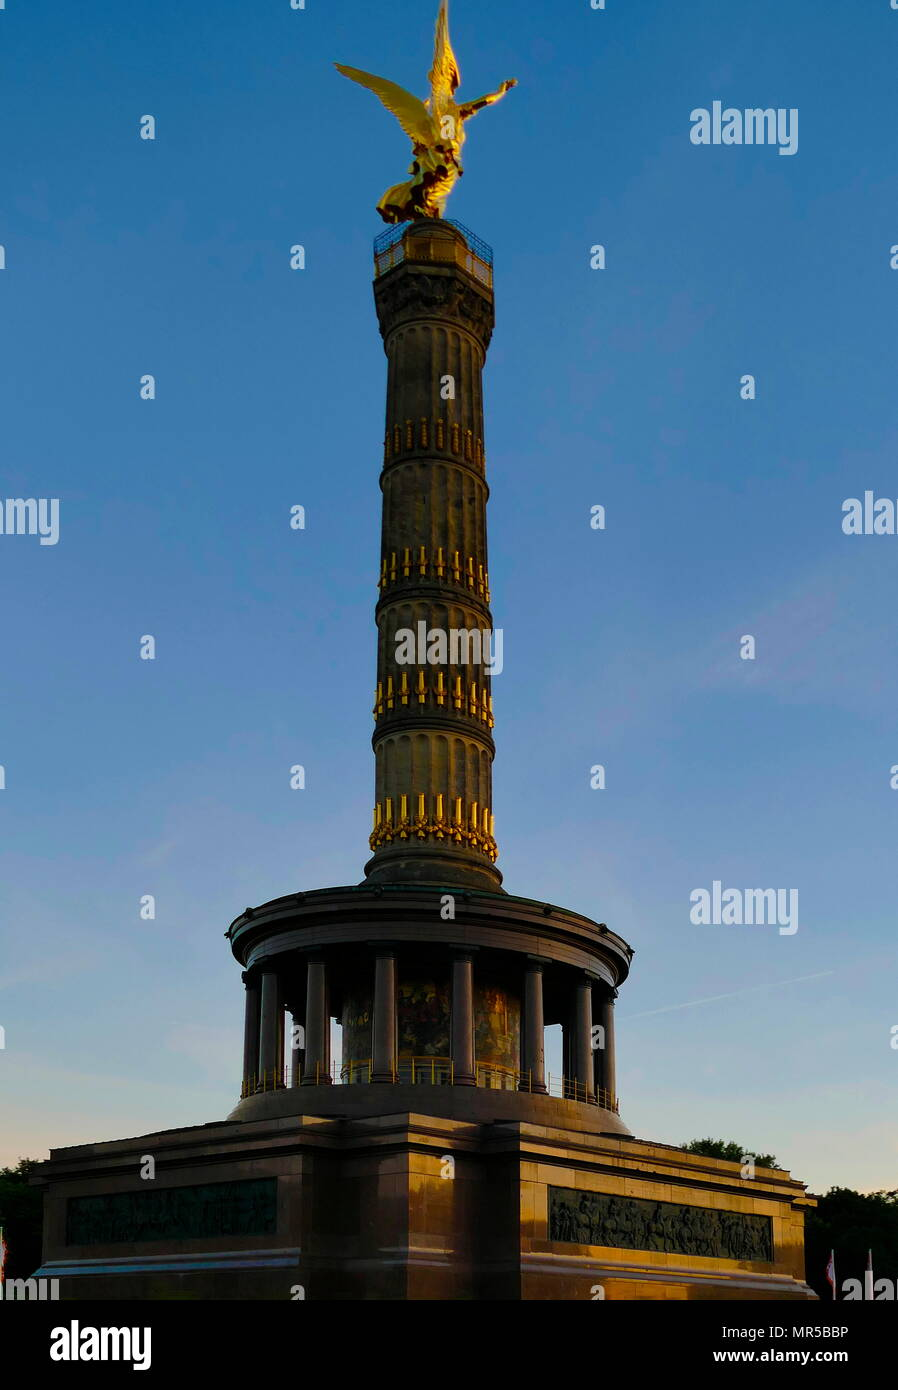 Photograph of the Victory Column (Siegessaule) Monument in Berlin, Germany. Designed by Heinrich Strack, after 1864 to commemorate the Prussian victory in the Danish-Prussian War. Heinrich Strack (1805-1880) a German architect of the Schinkelschule. Dated 21st Century - Stock Image